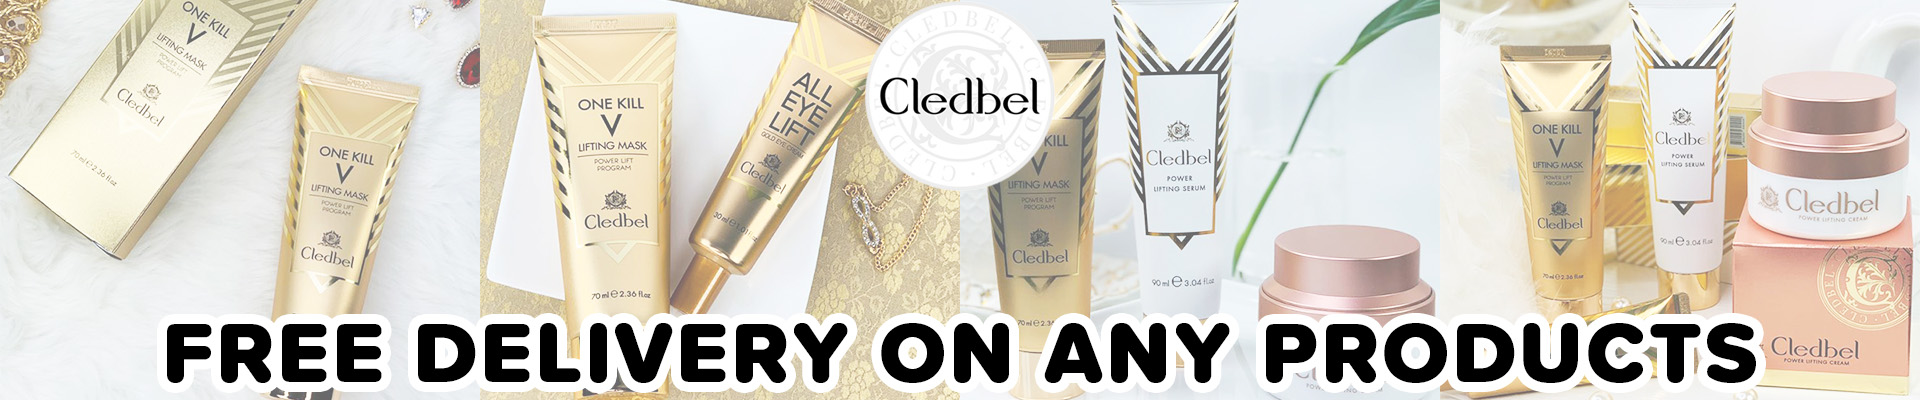 Cledbel Free Delivery on All Products